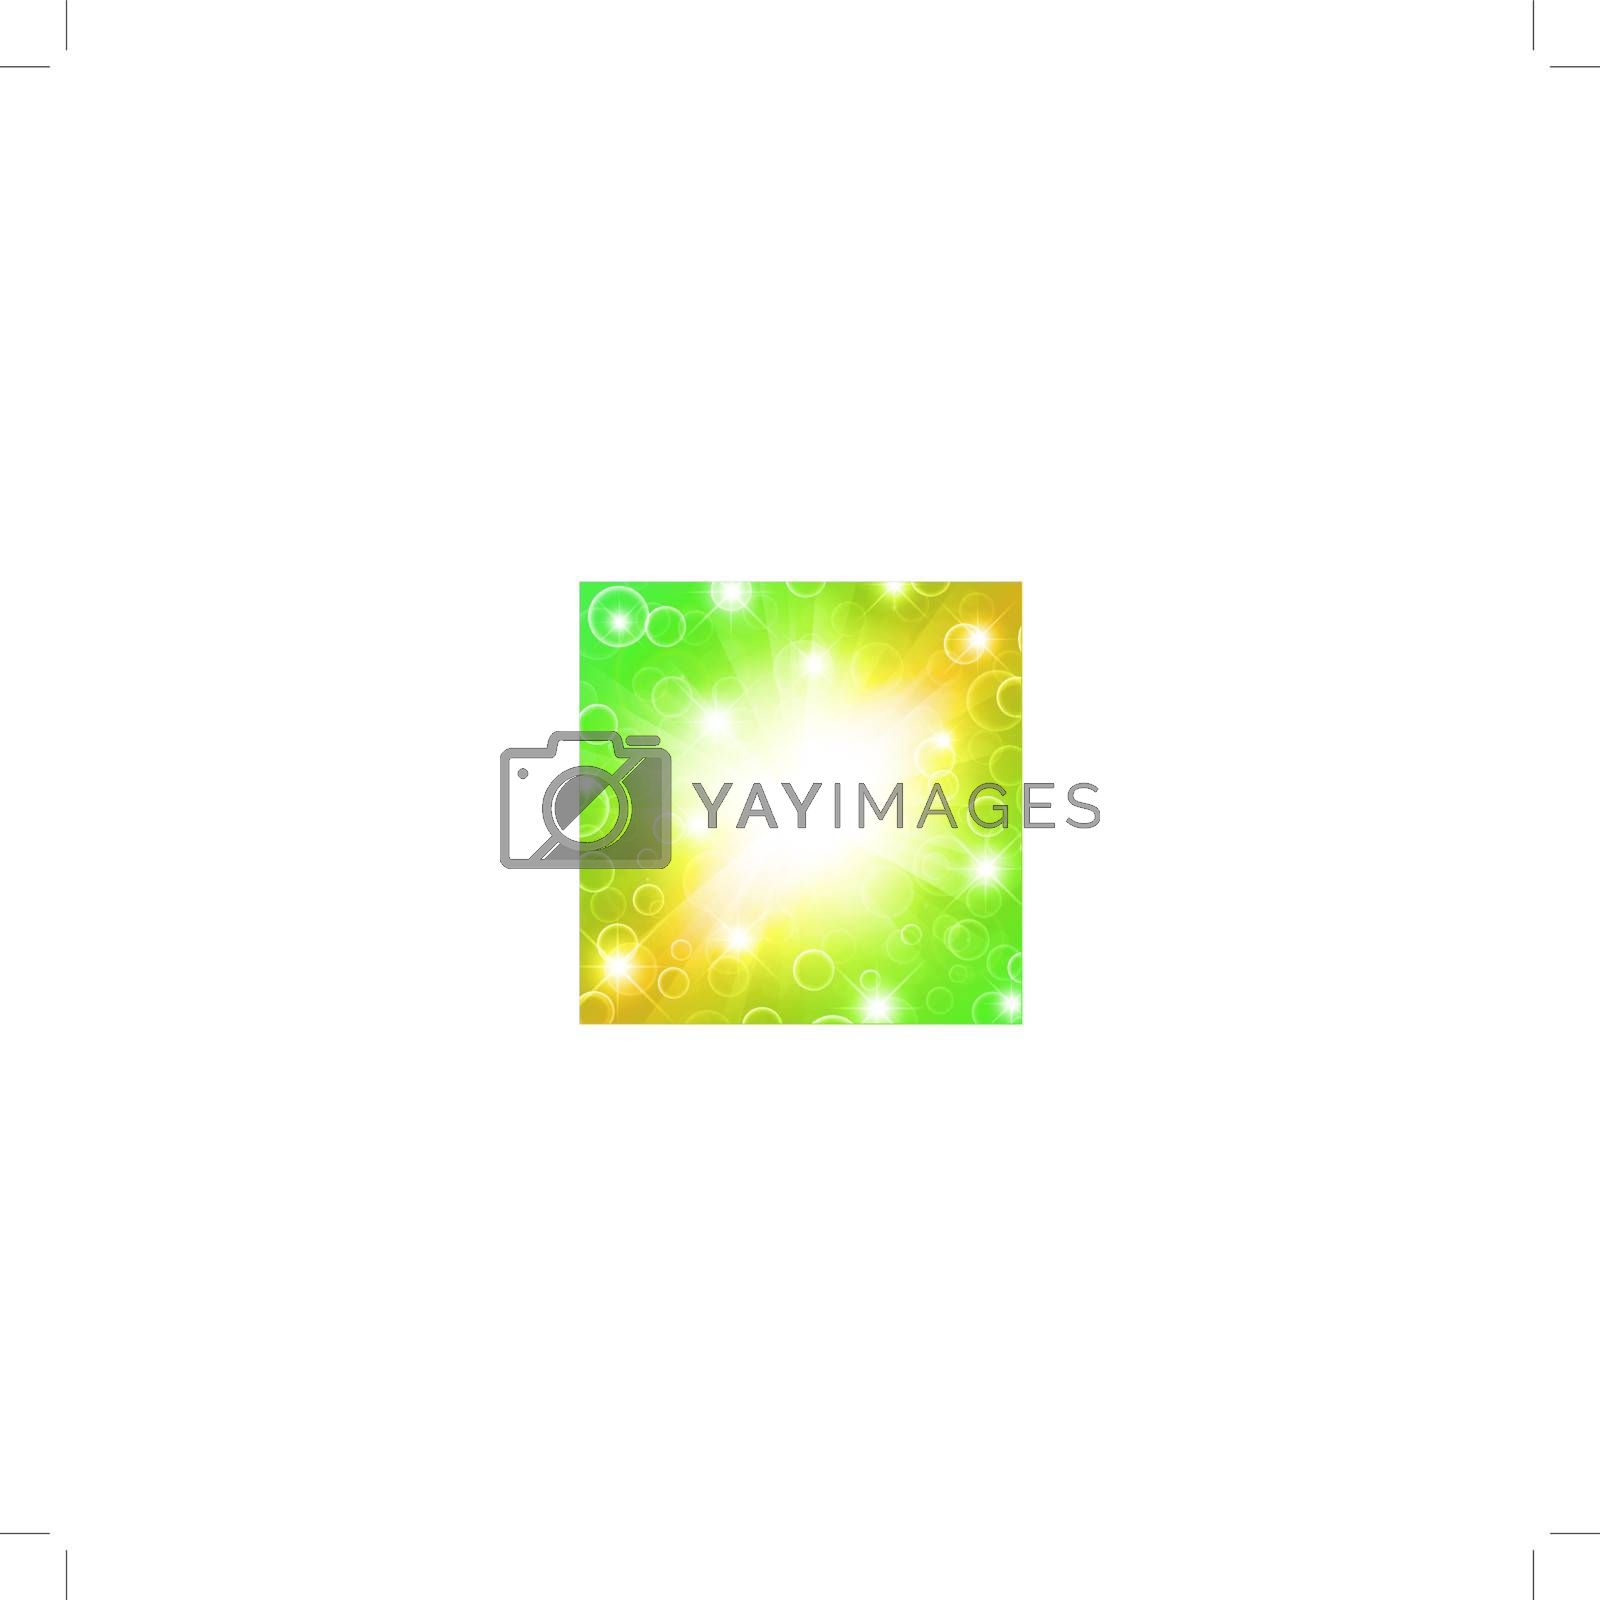 bright abstract explosion with stars over yellow and green, copyspace